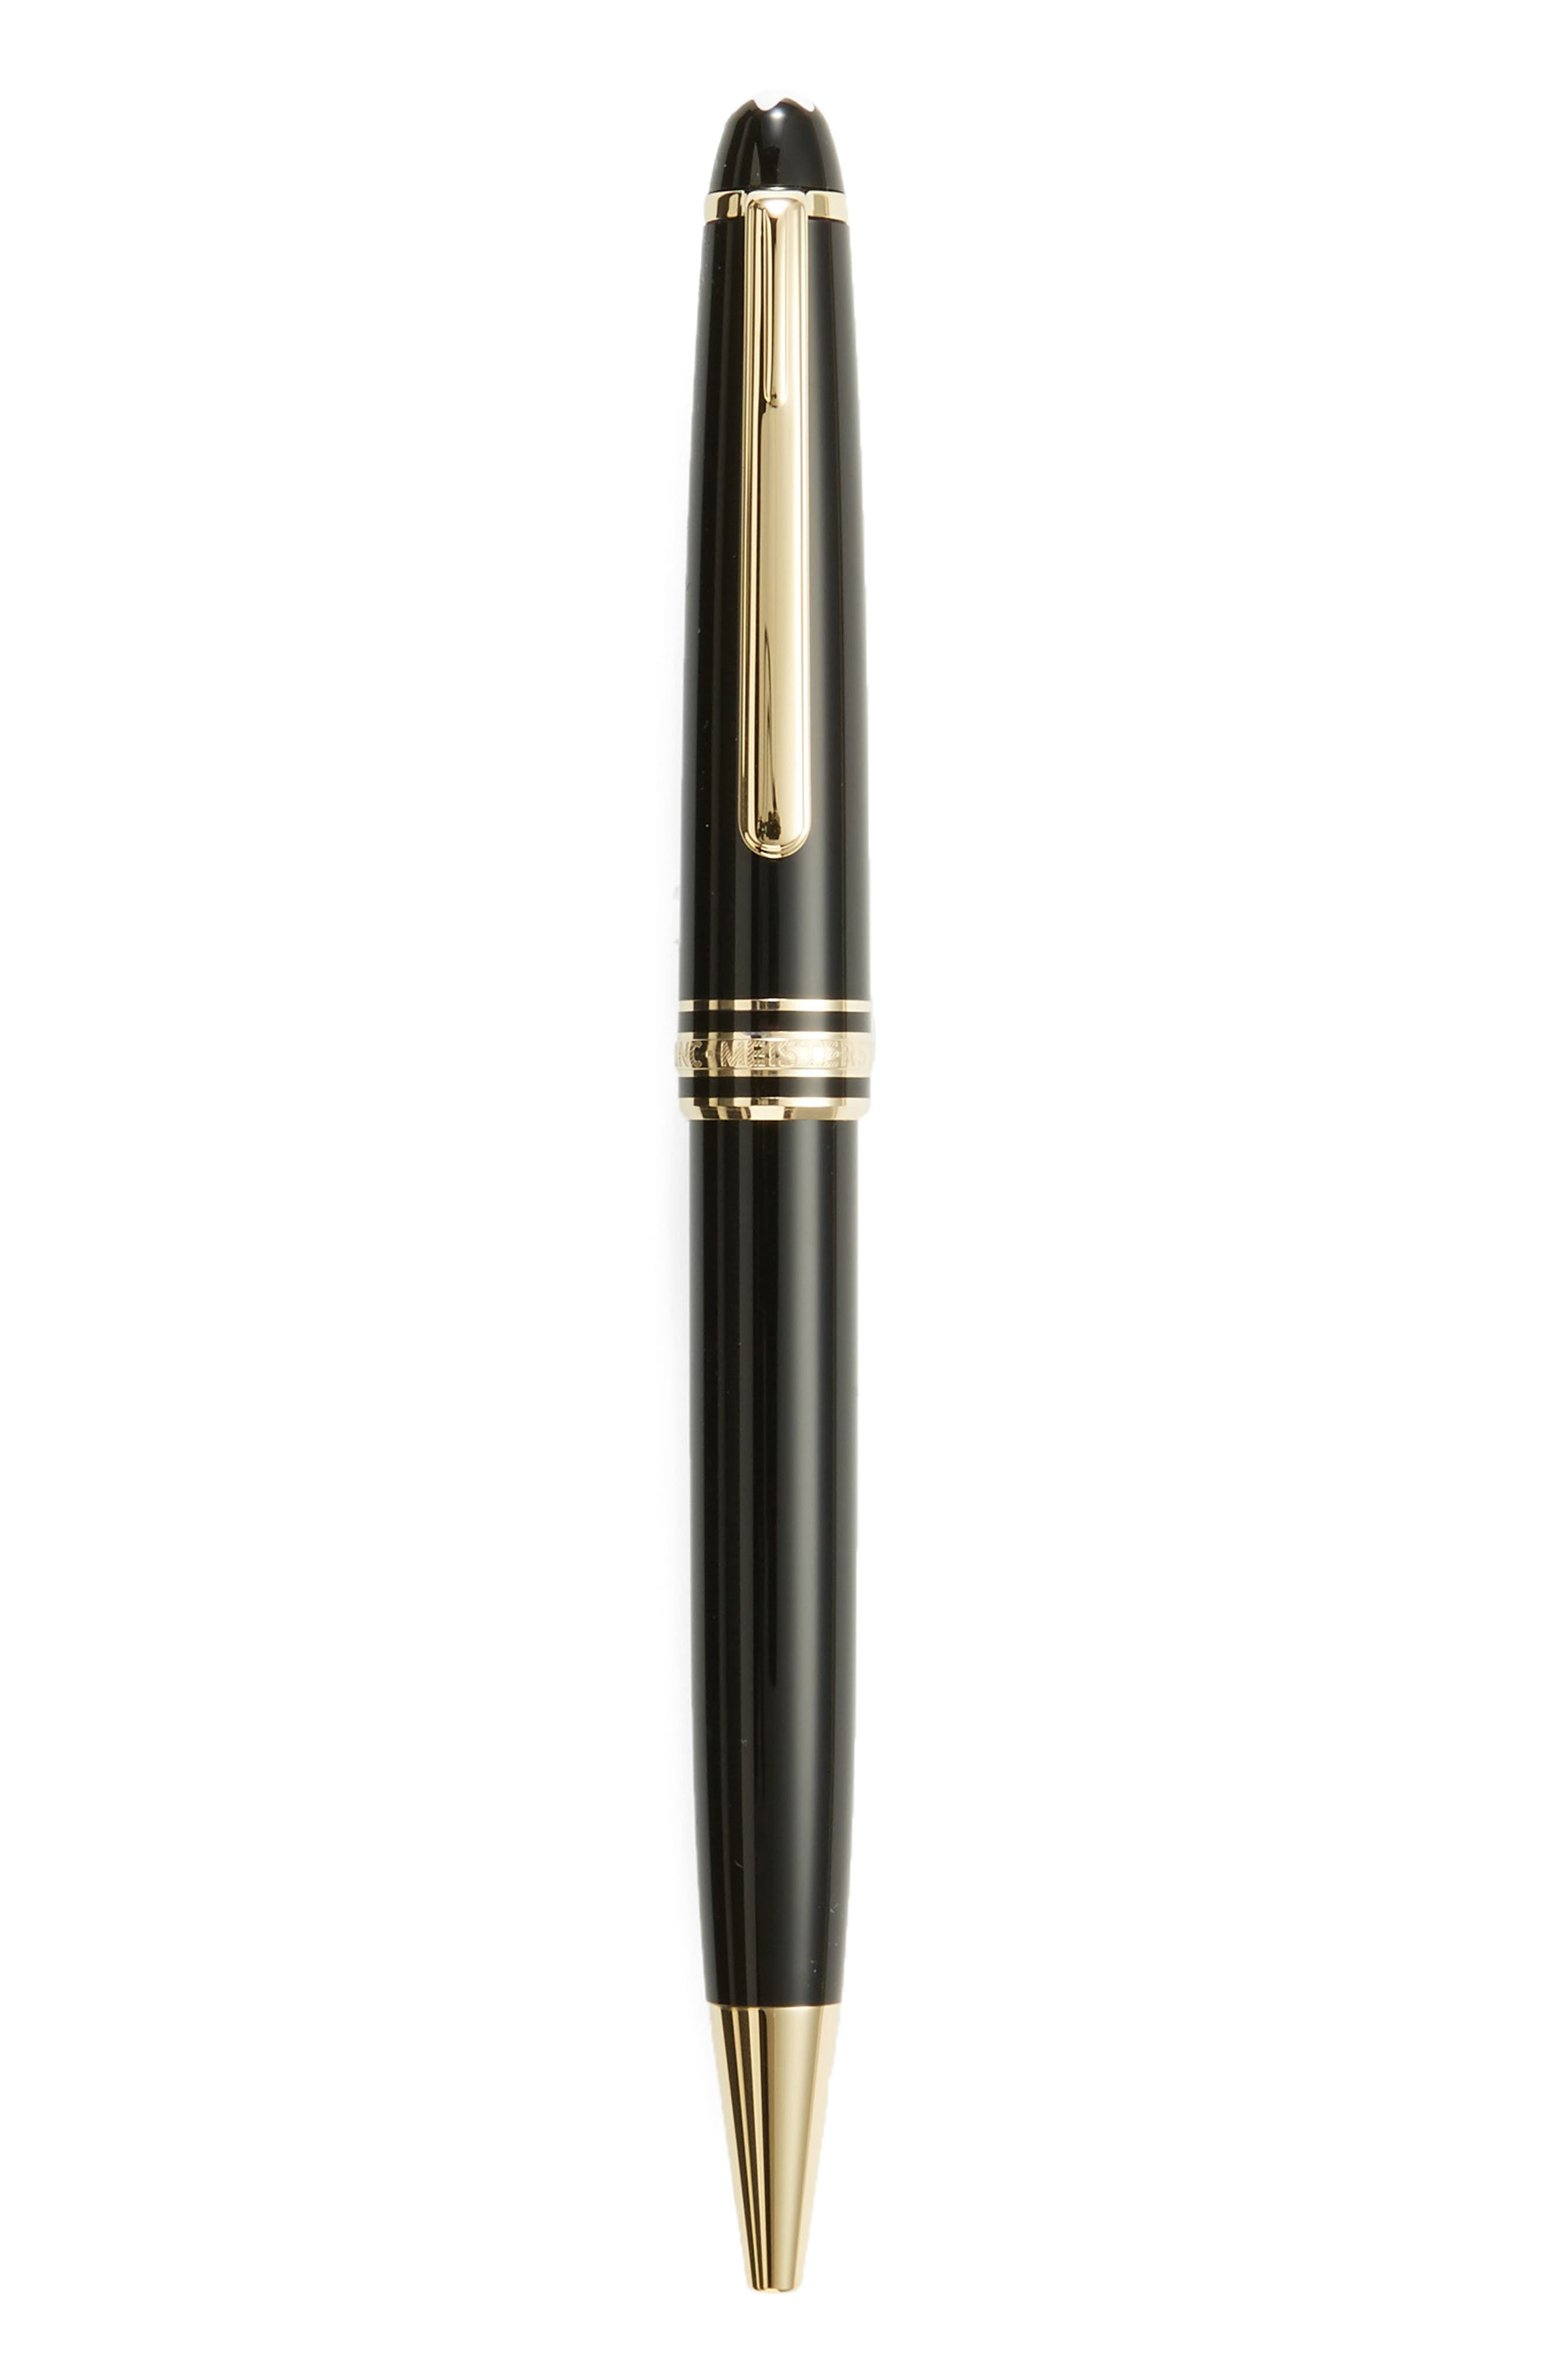 Main Image - MONTBLANC Meisterstück Gold Coated Classique Ballpoint Pen